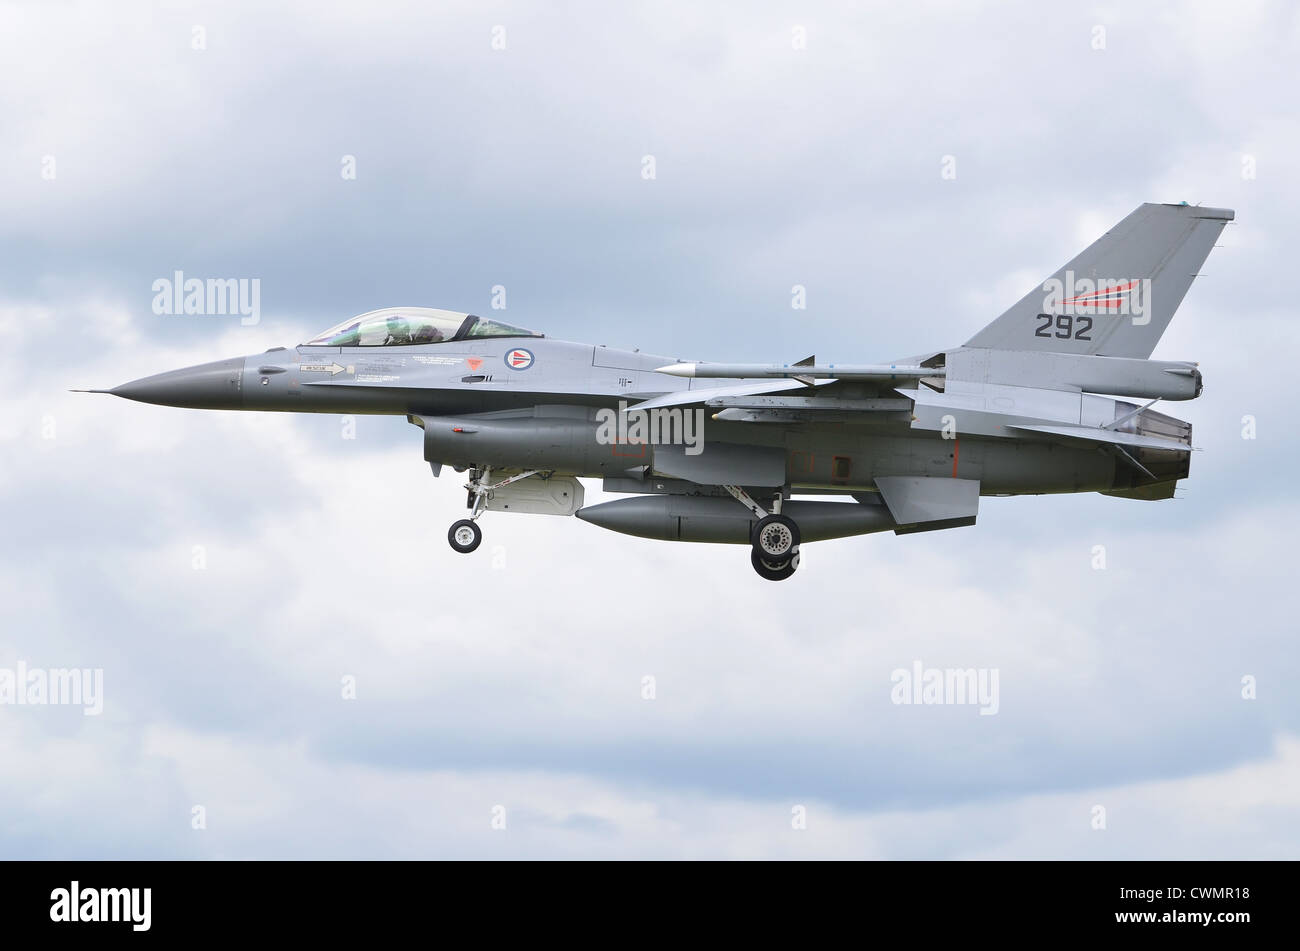 General Dynamics F-16AM Fighting Falcon operated by the Norwegian Air Force on approach for landing at RAF Fairford - Stock Image